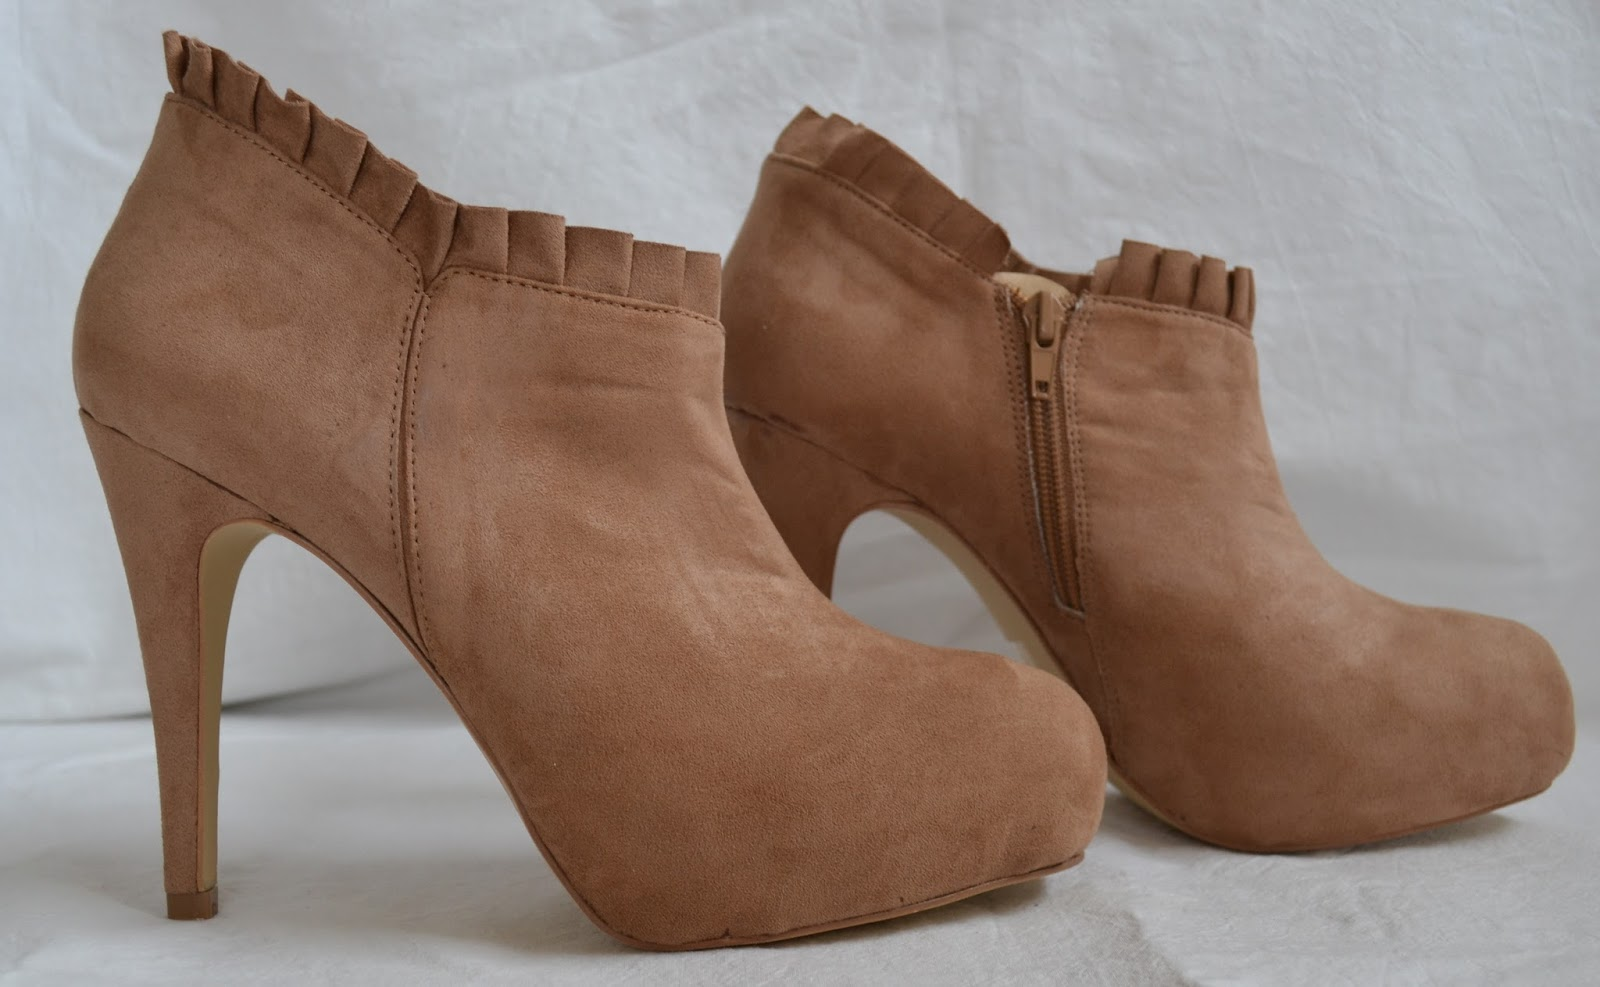 high heeled shoes, boots